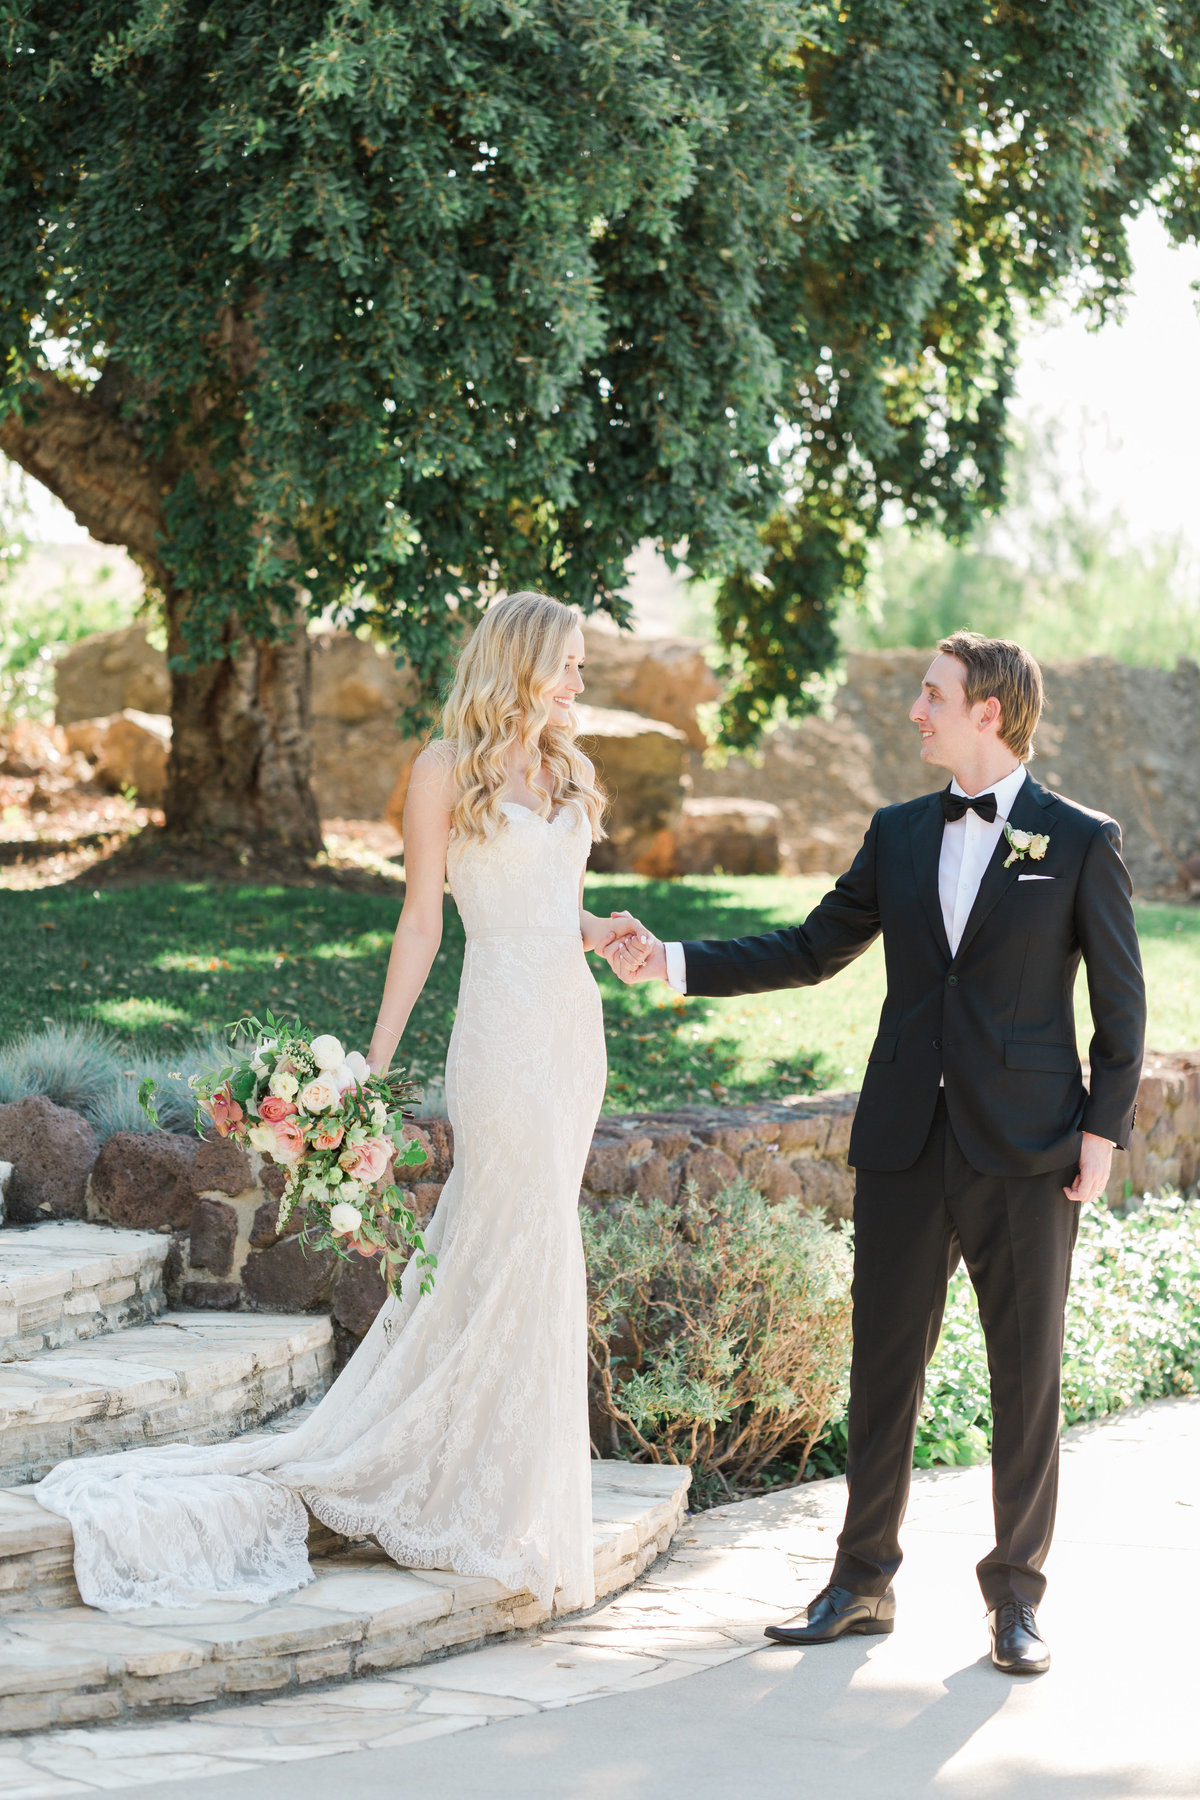 Quail_Ranch_Blush_California_Wedding_Valorie_Darling_Photography - 113 of 151